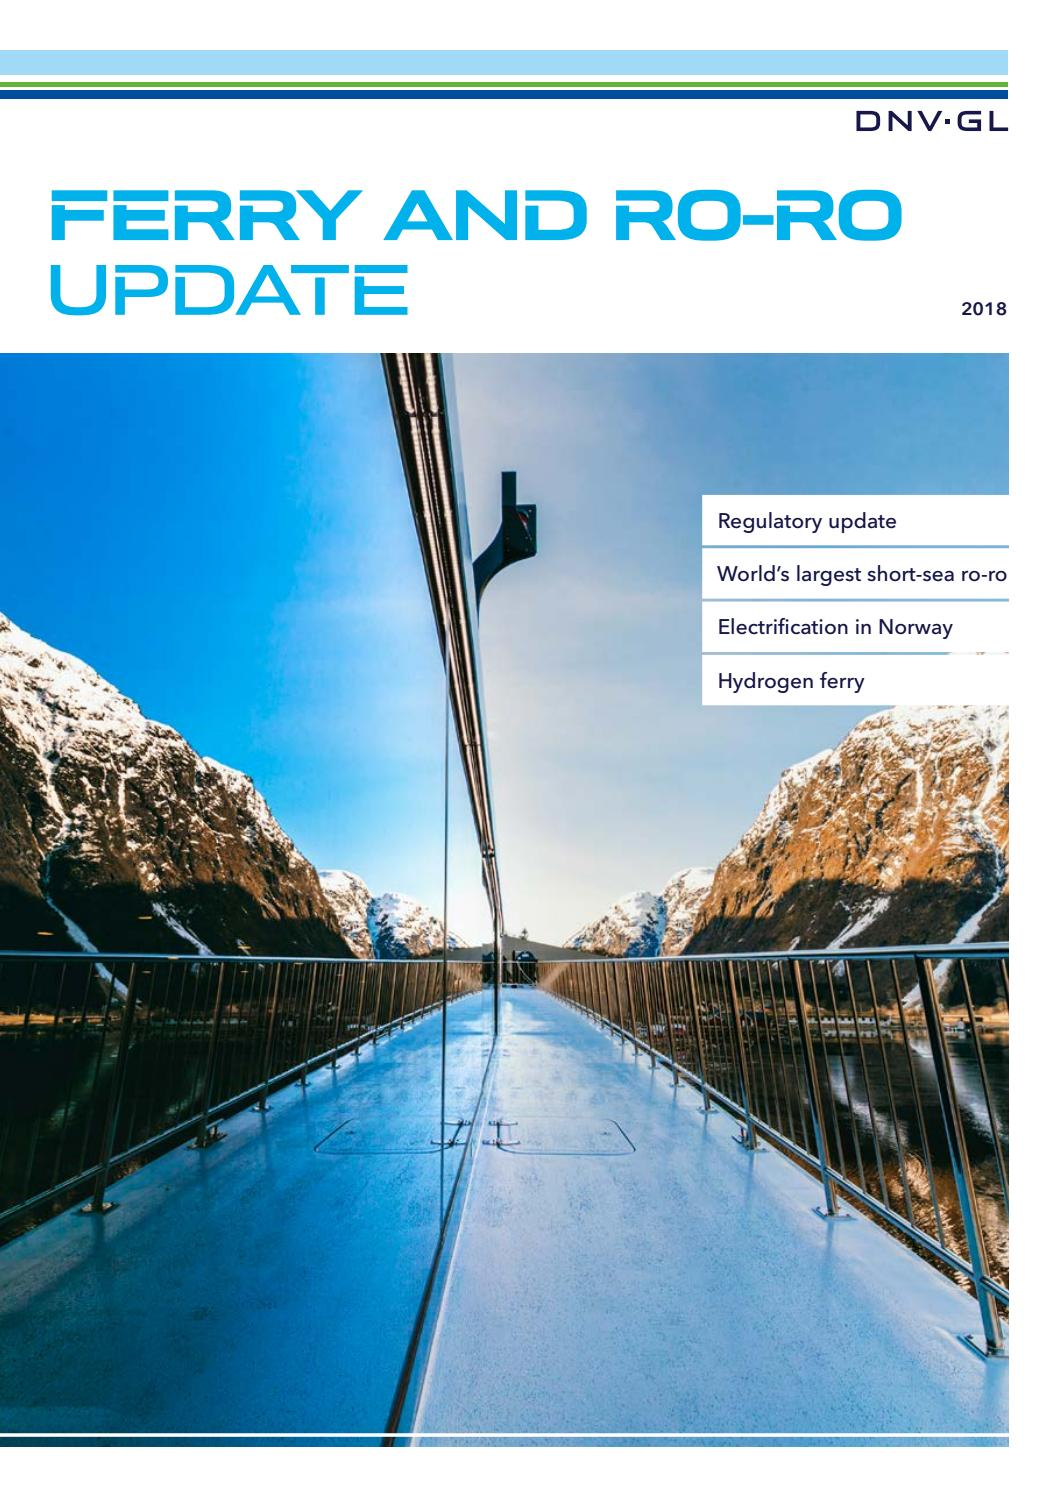 DNV GL Ferry and RoRo Update 2018 by DNV GL - issuu